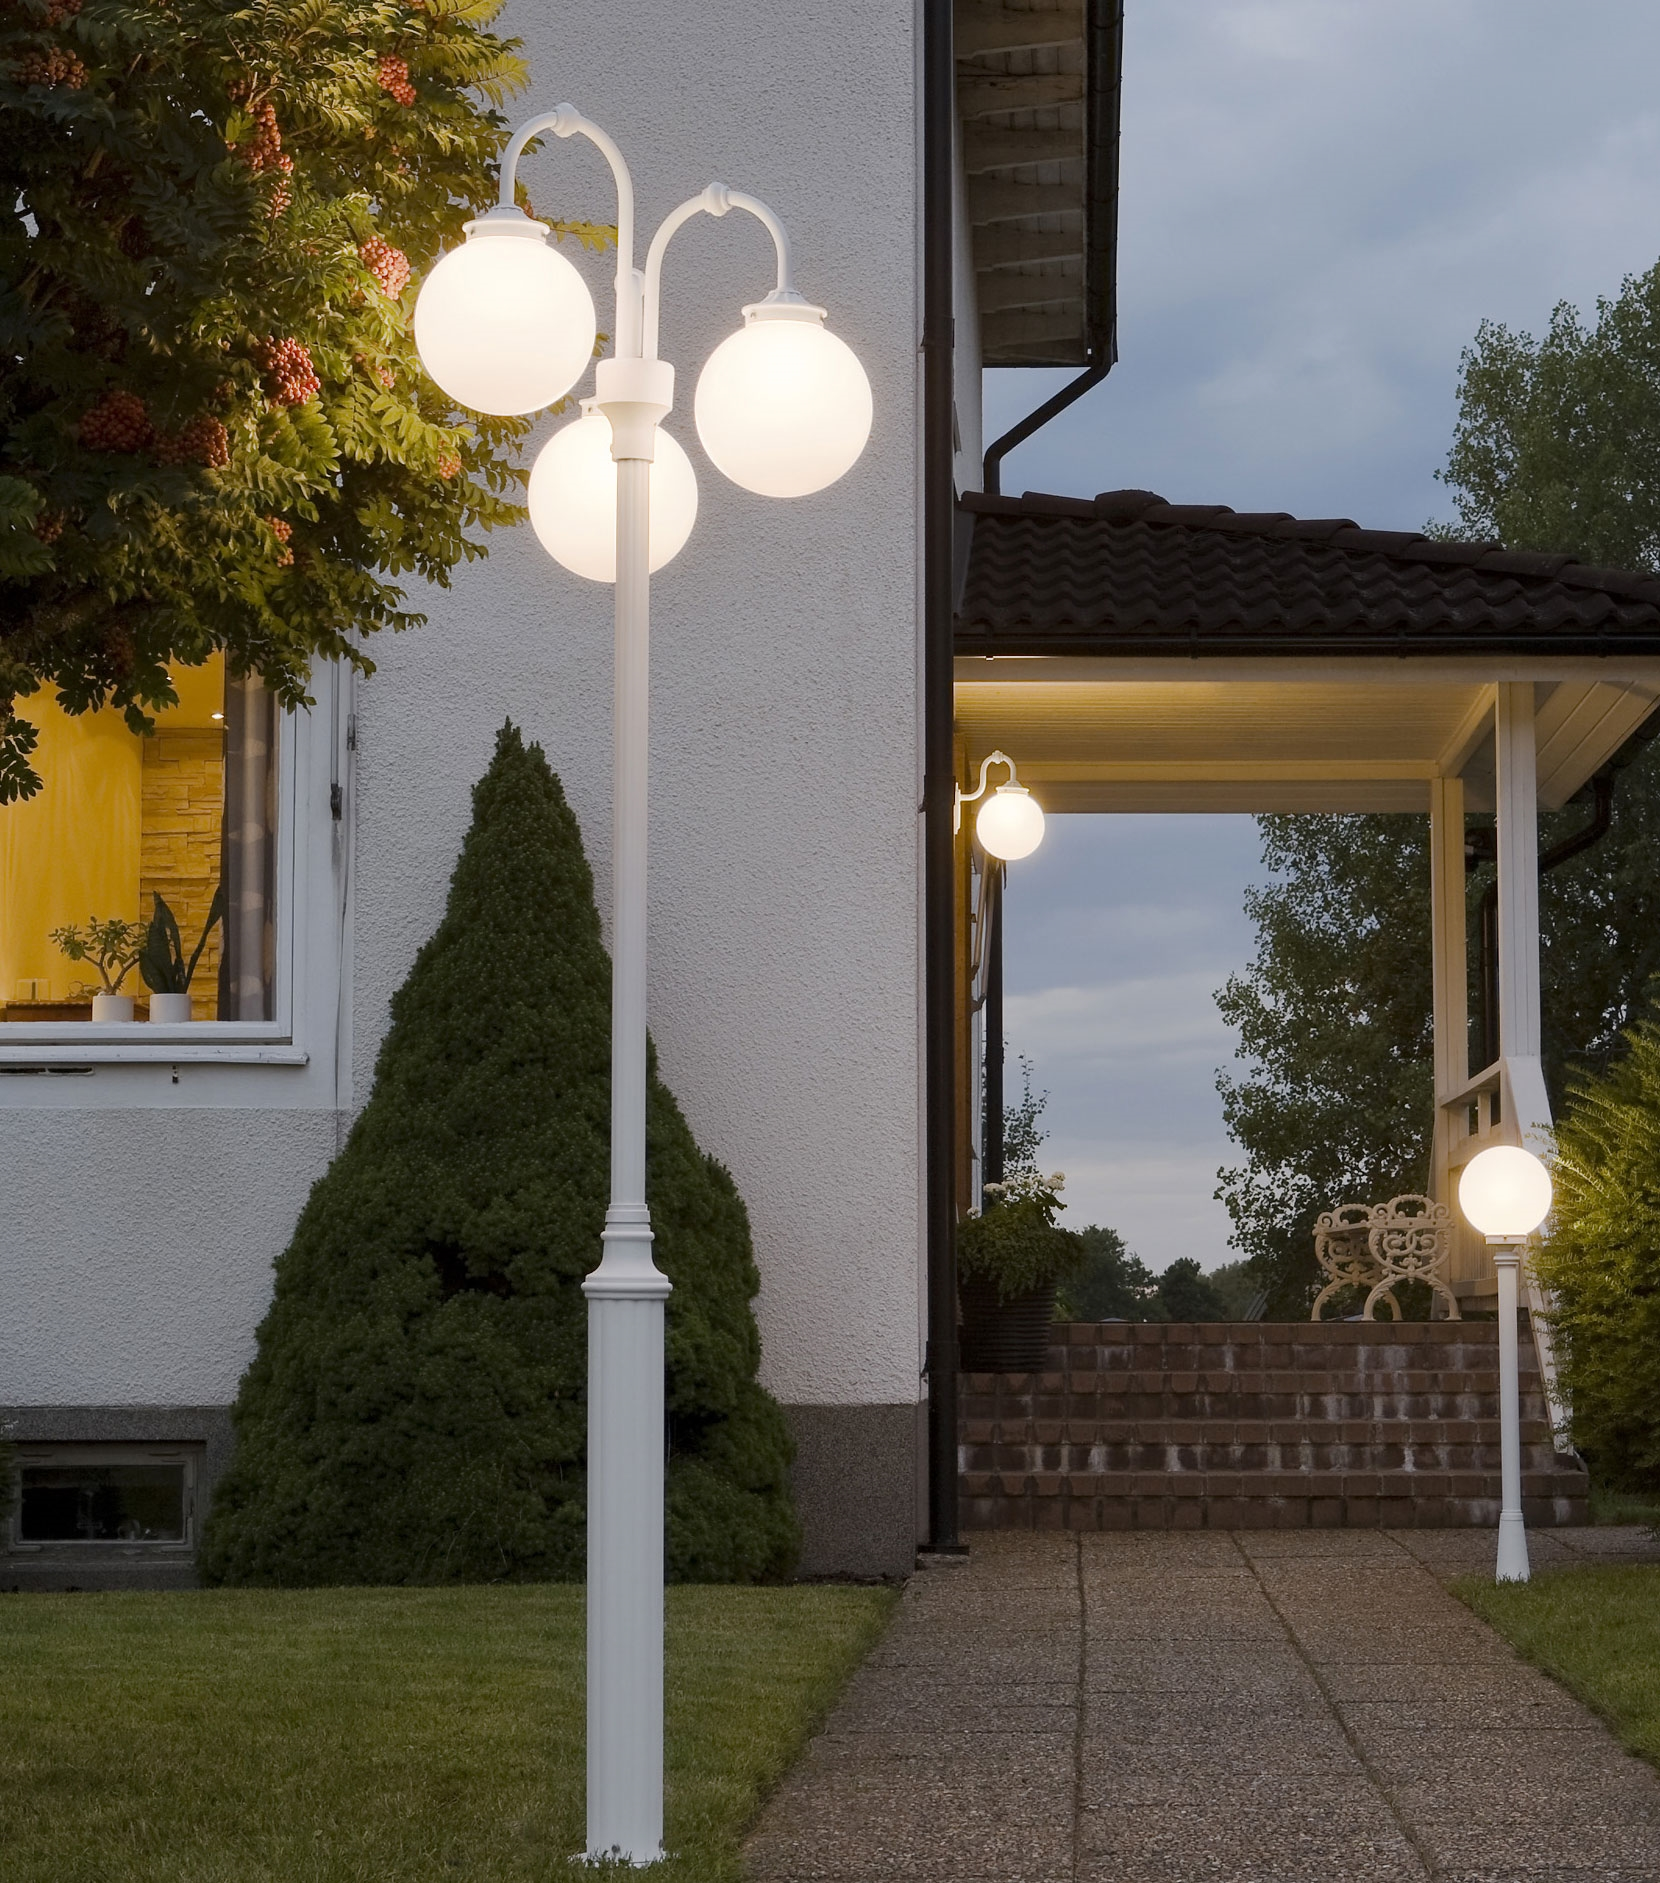 Classical Outdoor Lamp Post With Three Opal Globes On A White Pole